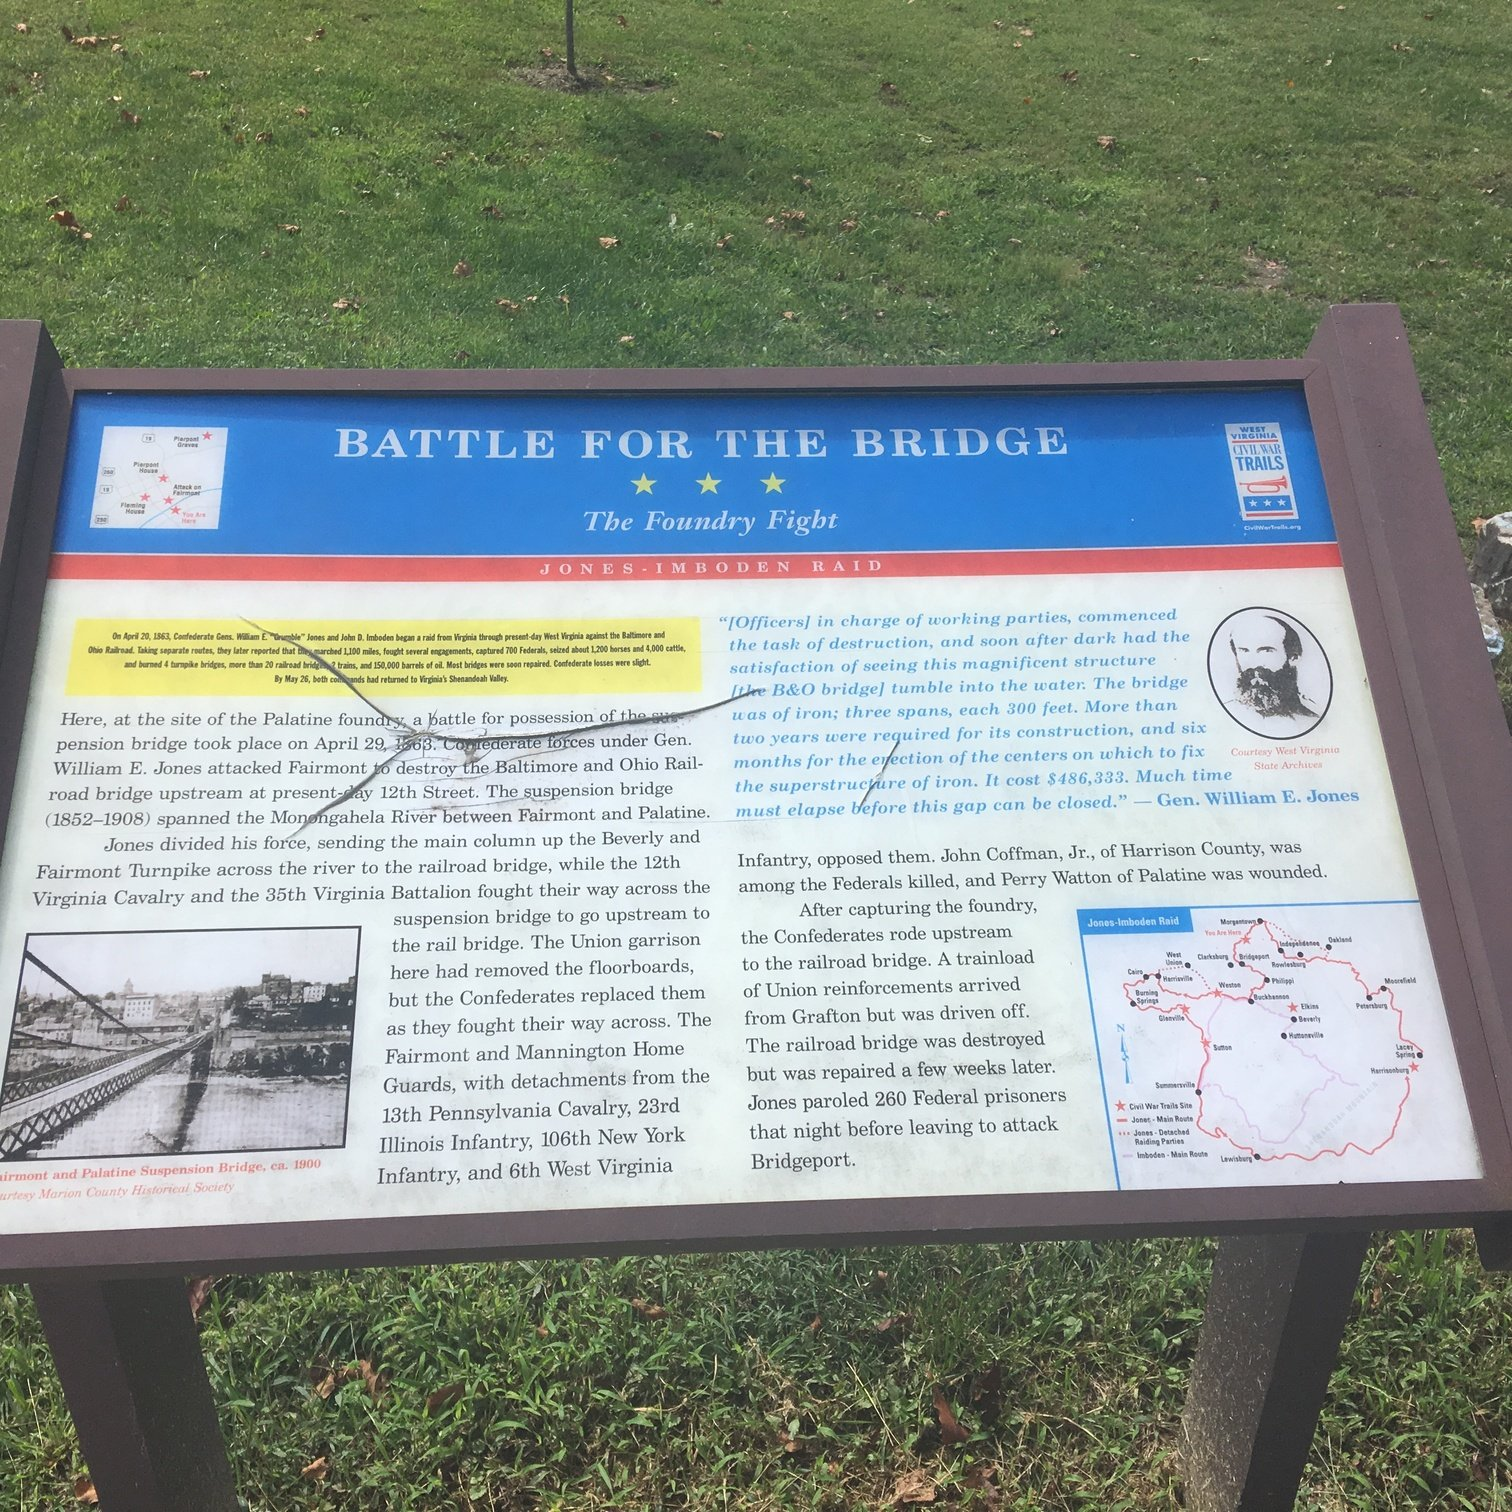 This marker lists the details of the battle and key people involved. This battle did not mark much sustained success in the region.